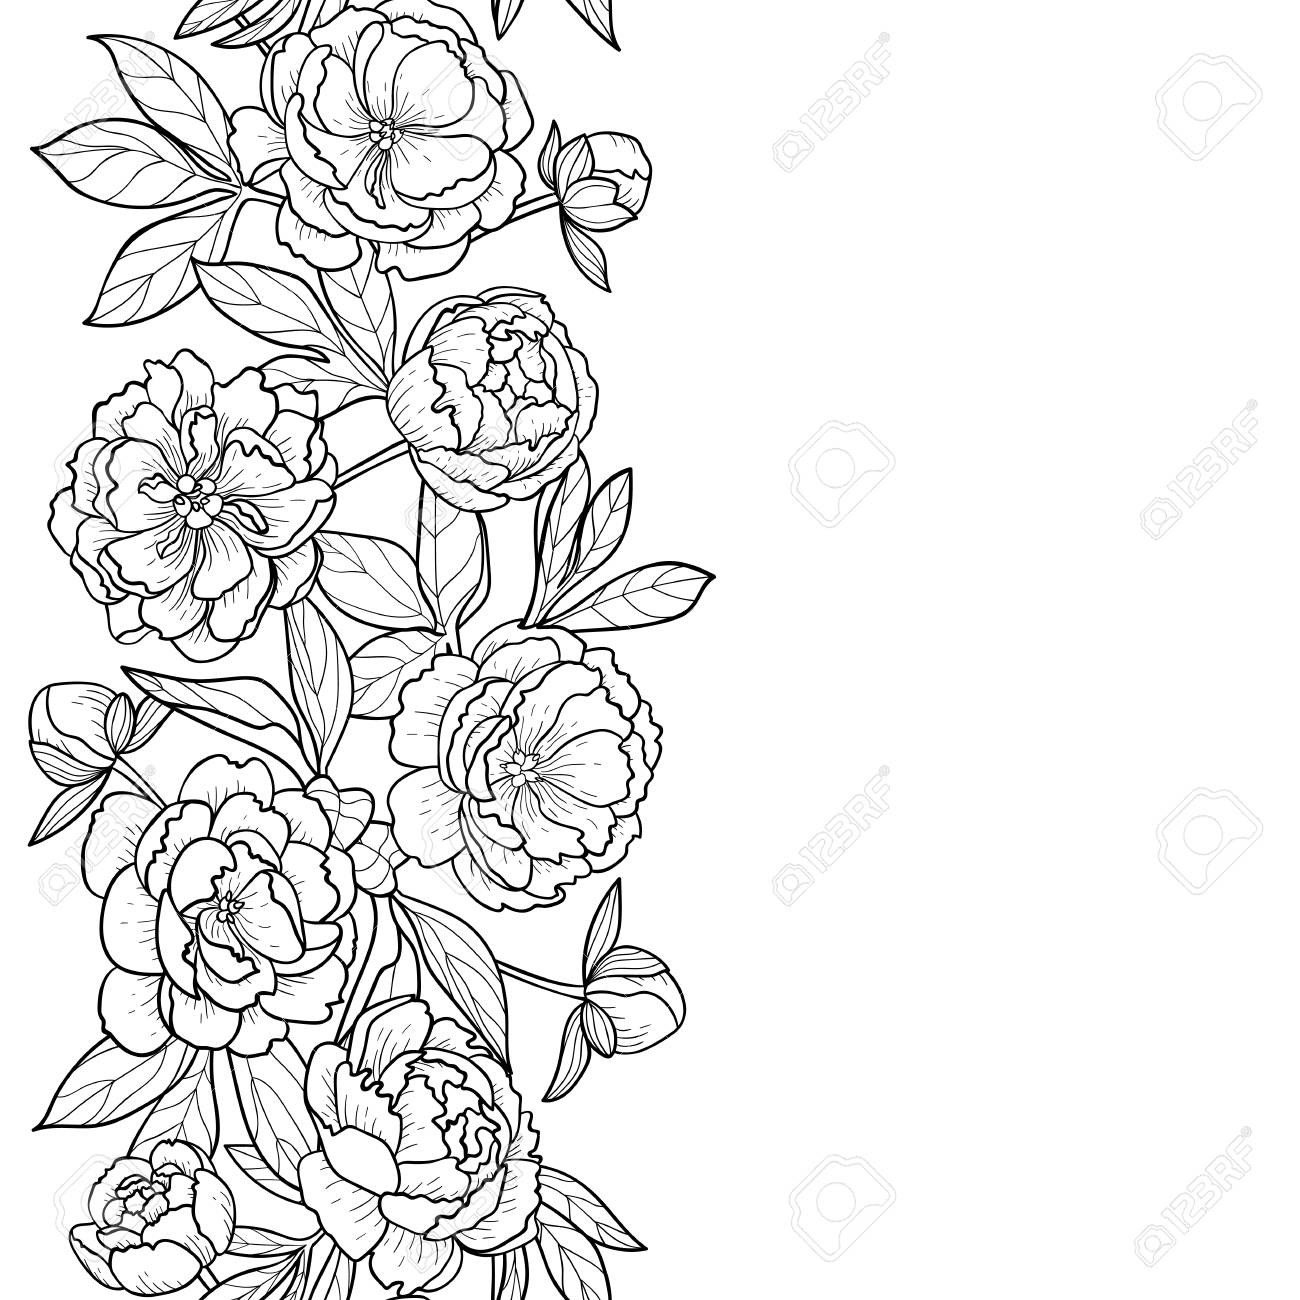 Peony Flowers And Leaves Seamless Vertical Border Floral Romantic